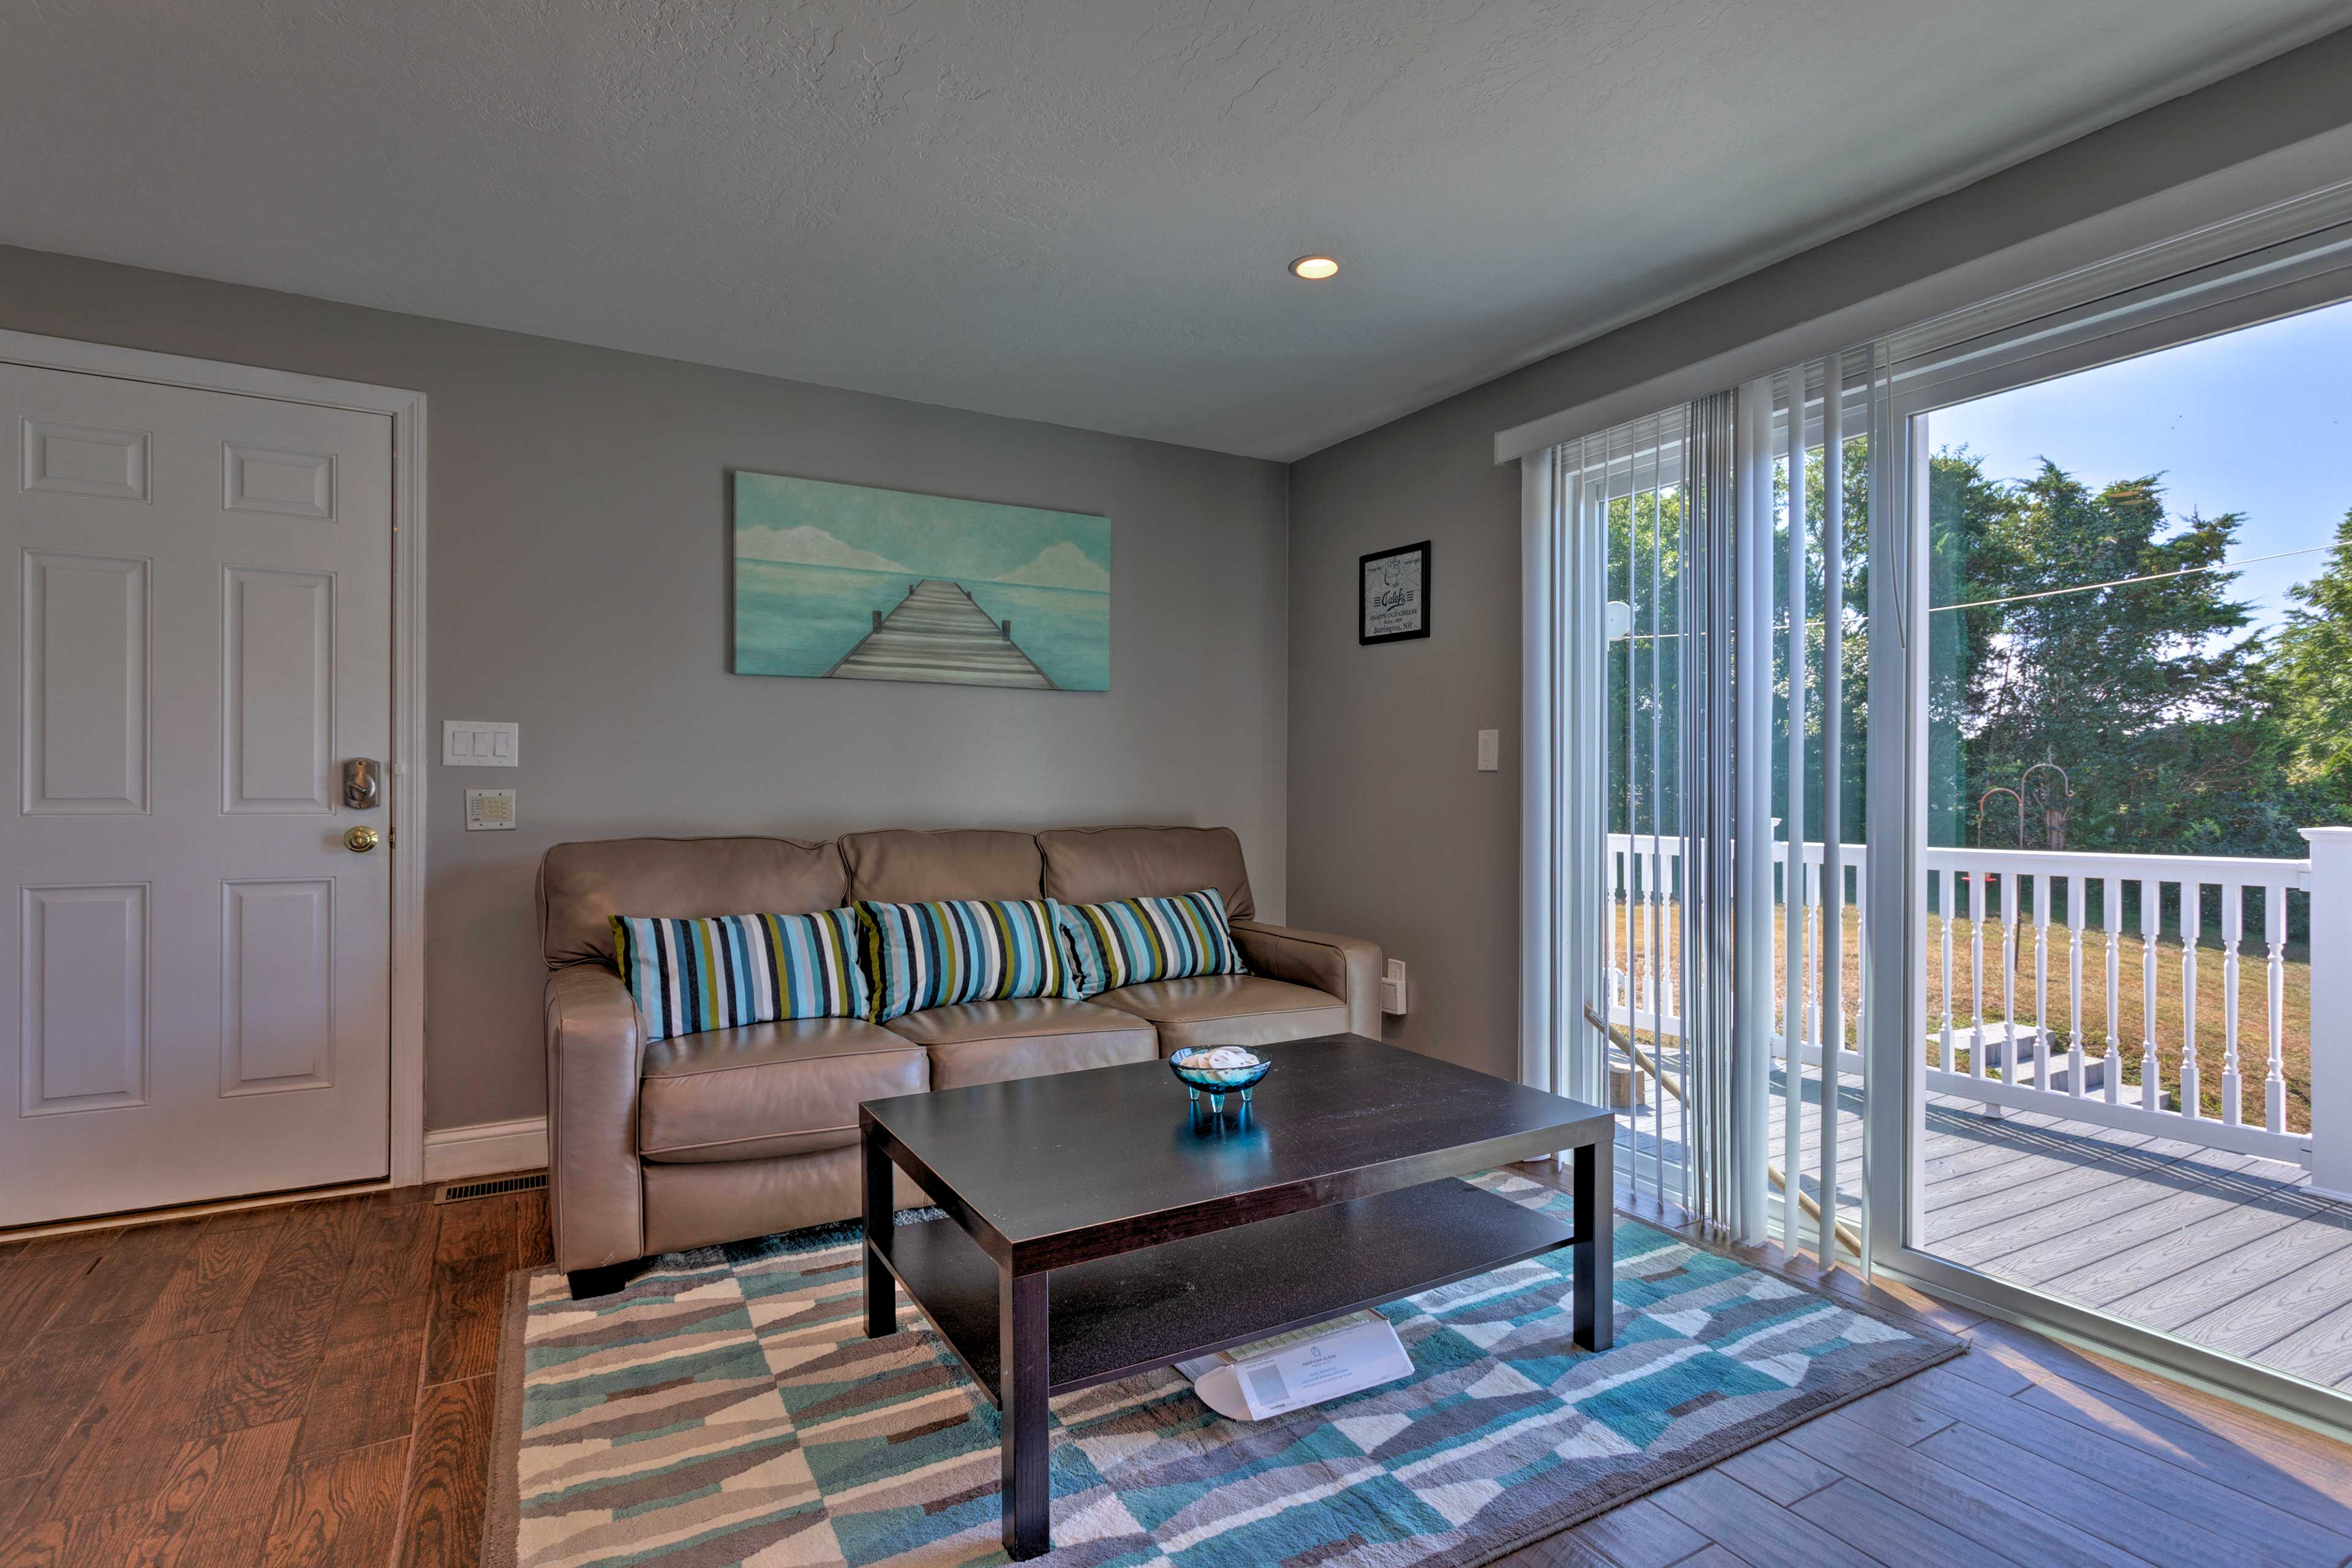 Open up the sliding glass door and feel the fresh breeze!